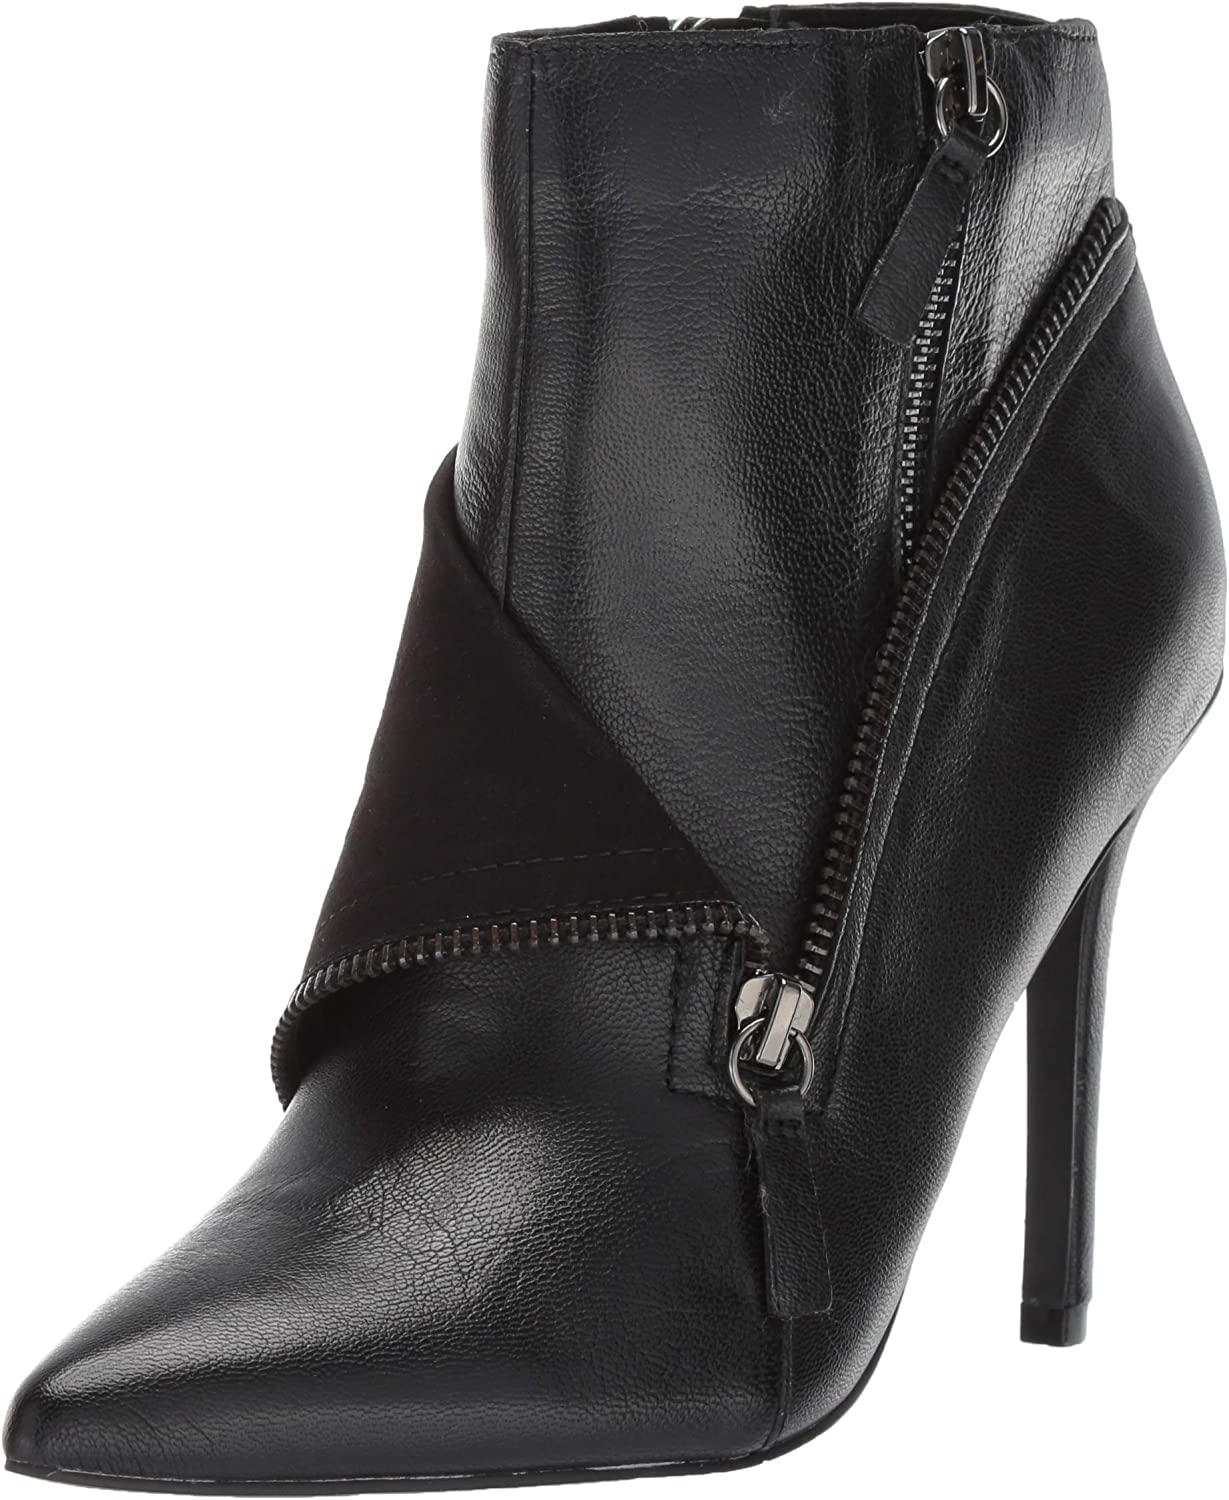 Fergie Womens Admire Ankle Boot